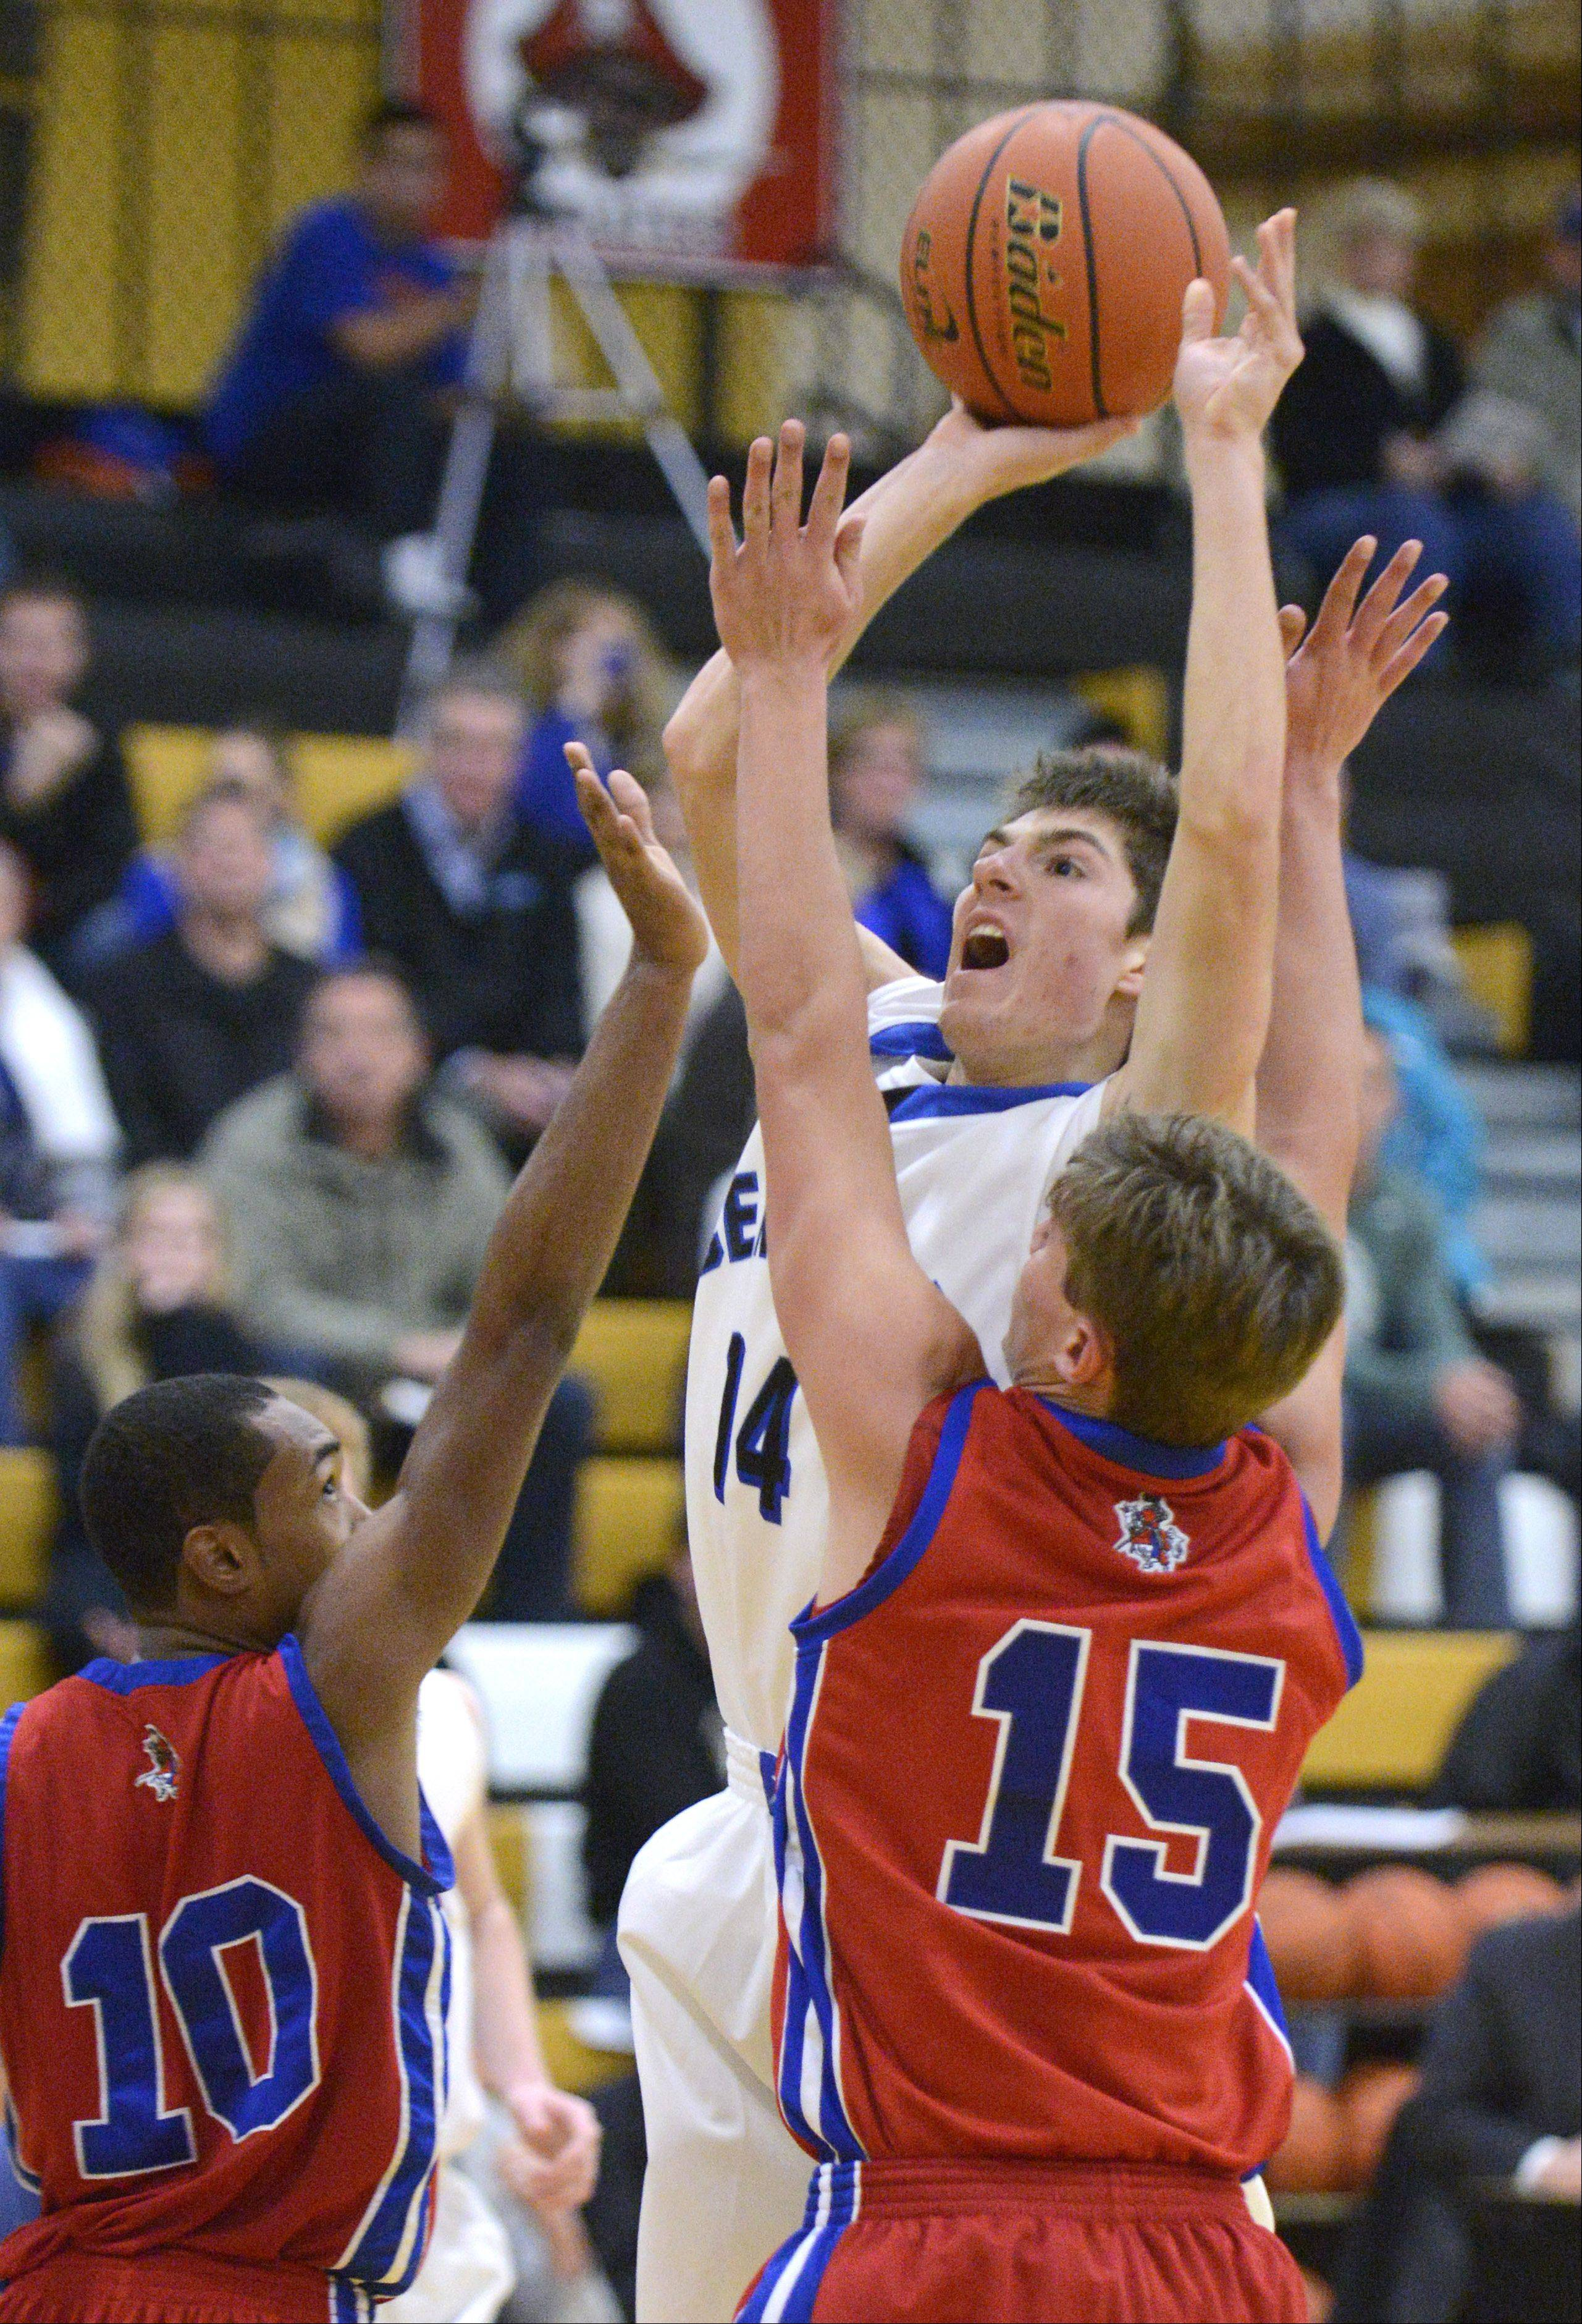 Burlington Central�s Jacob Schutta sinks a shot over a block by Dundee-Crown�s Kiwaun Seals (10) and Nick Munson in the third quarter on Tuesday at Sycamore.